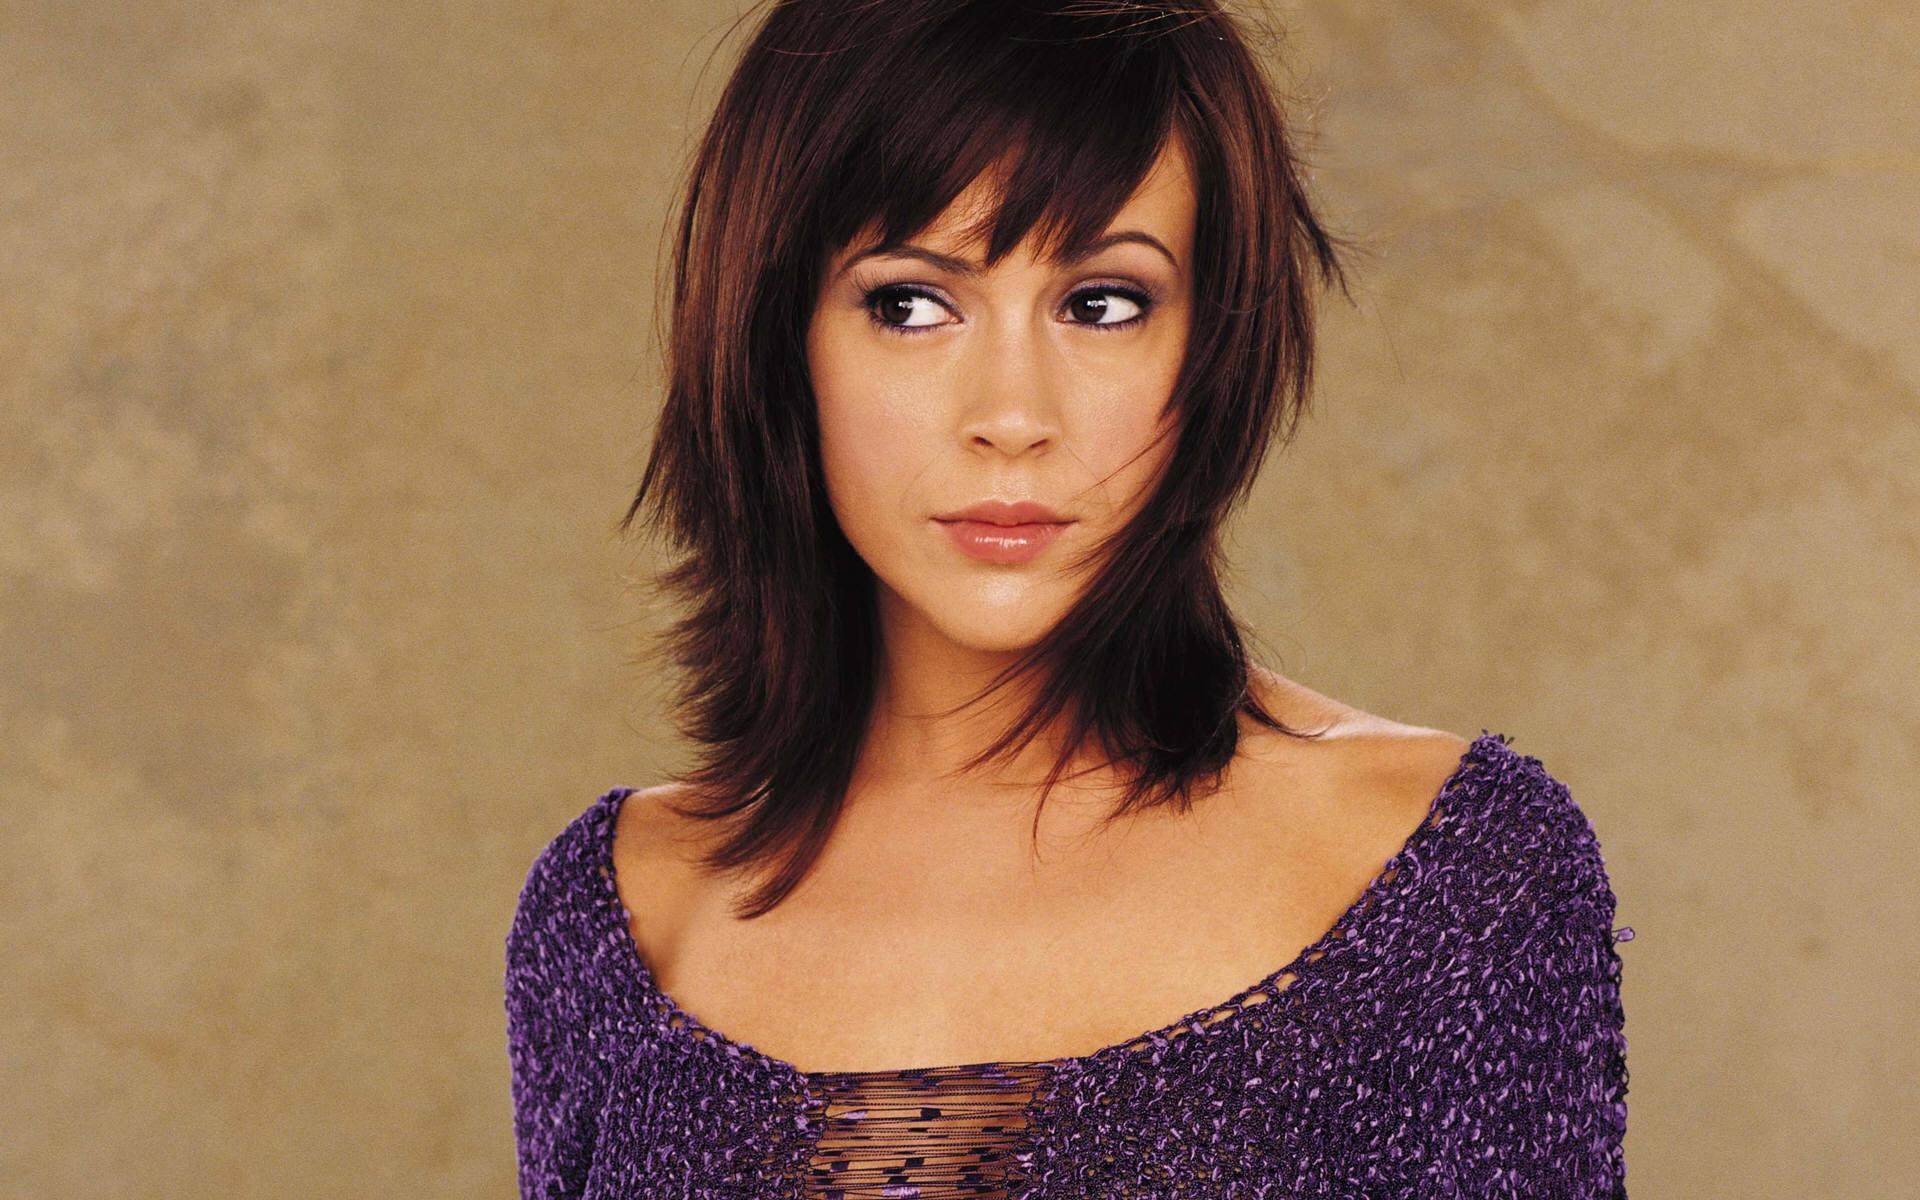 Free Wallpaper Free Star wallpaper Alyssa Milano wallpaper